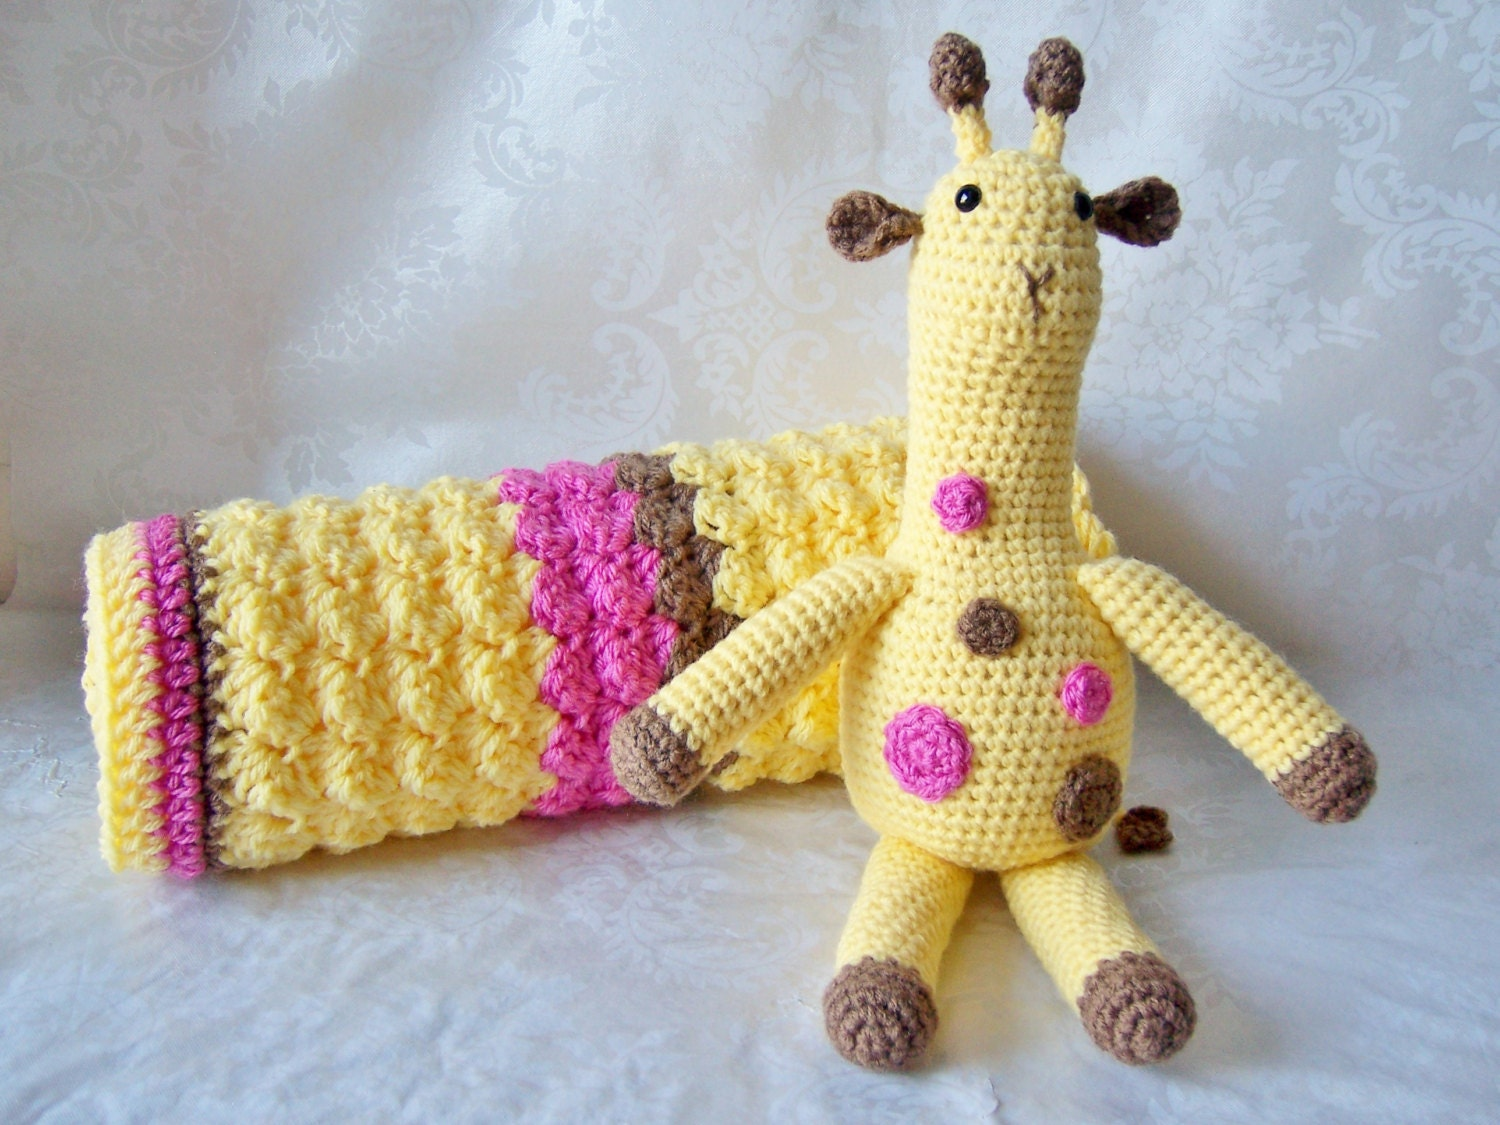 Crochet Pattern Giraffe Blanket : Crochet Baby Blanket Crochet Giraffe and Baby Blanket Yellow